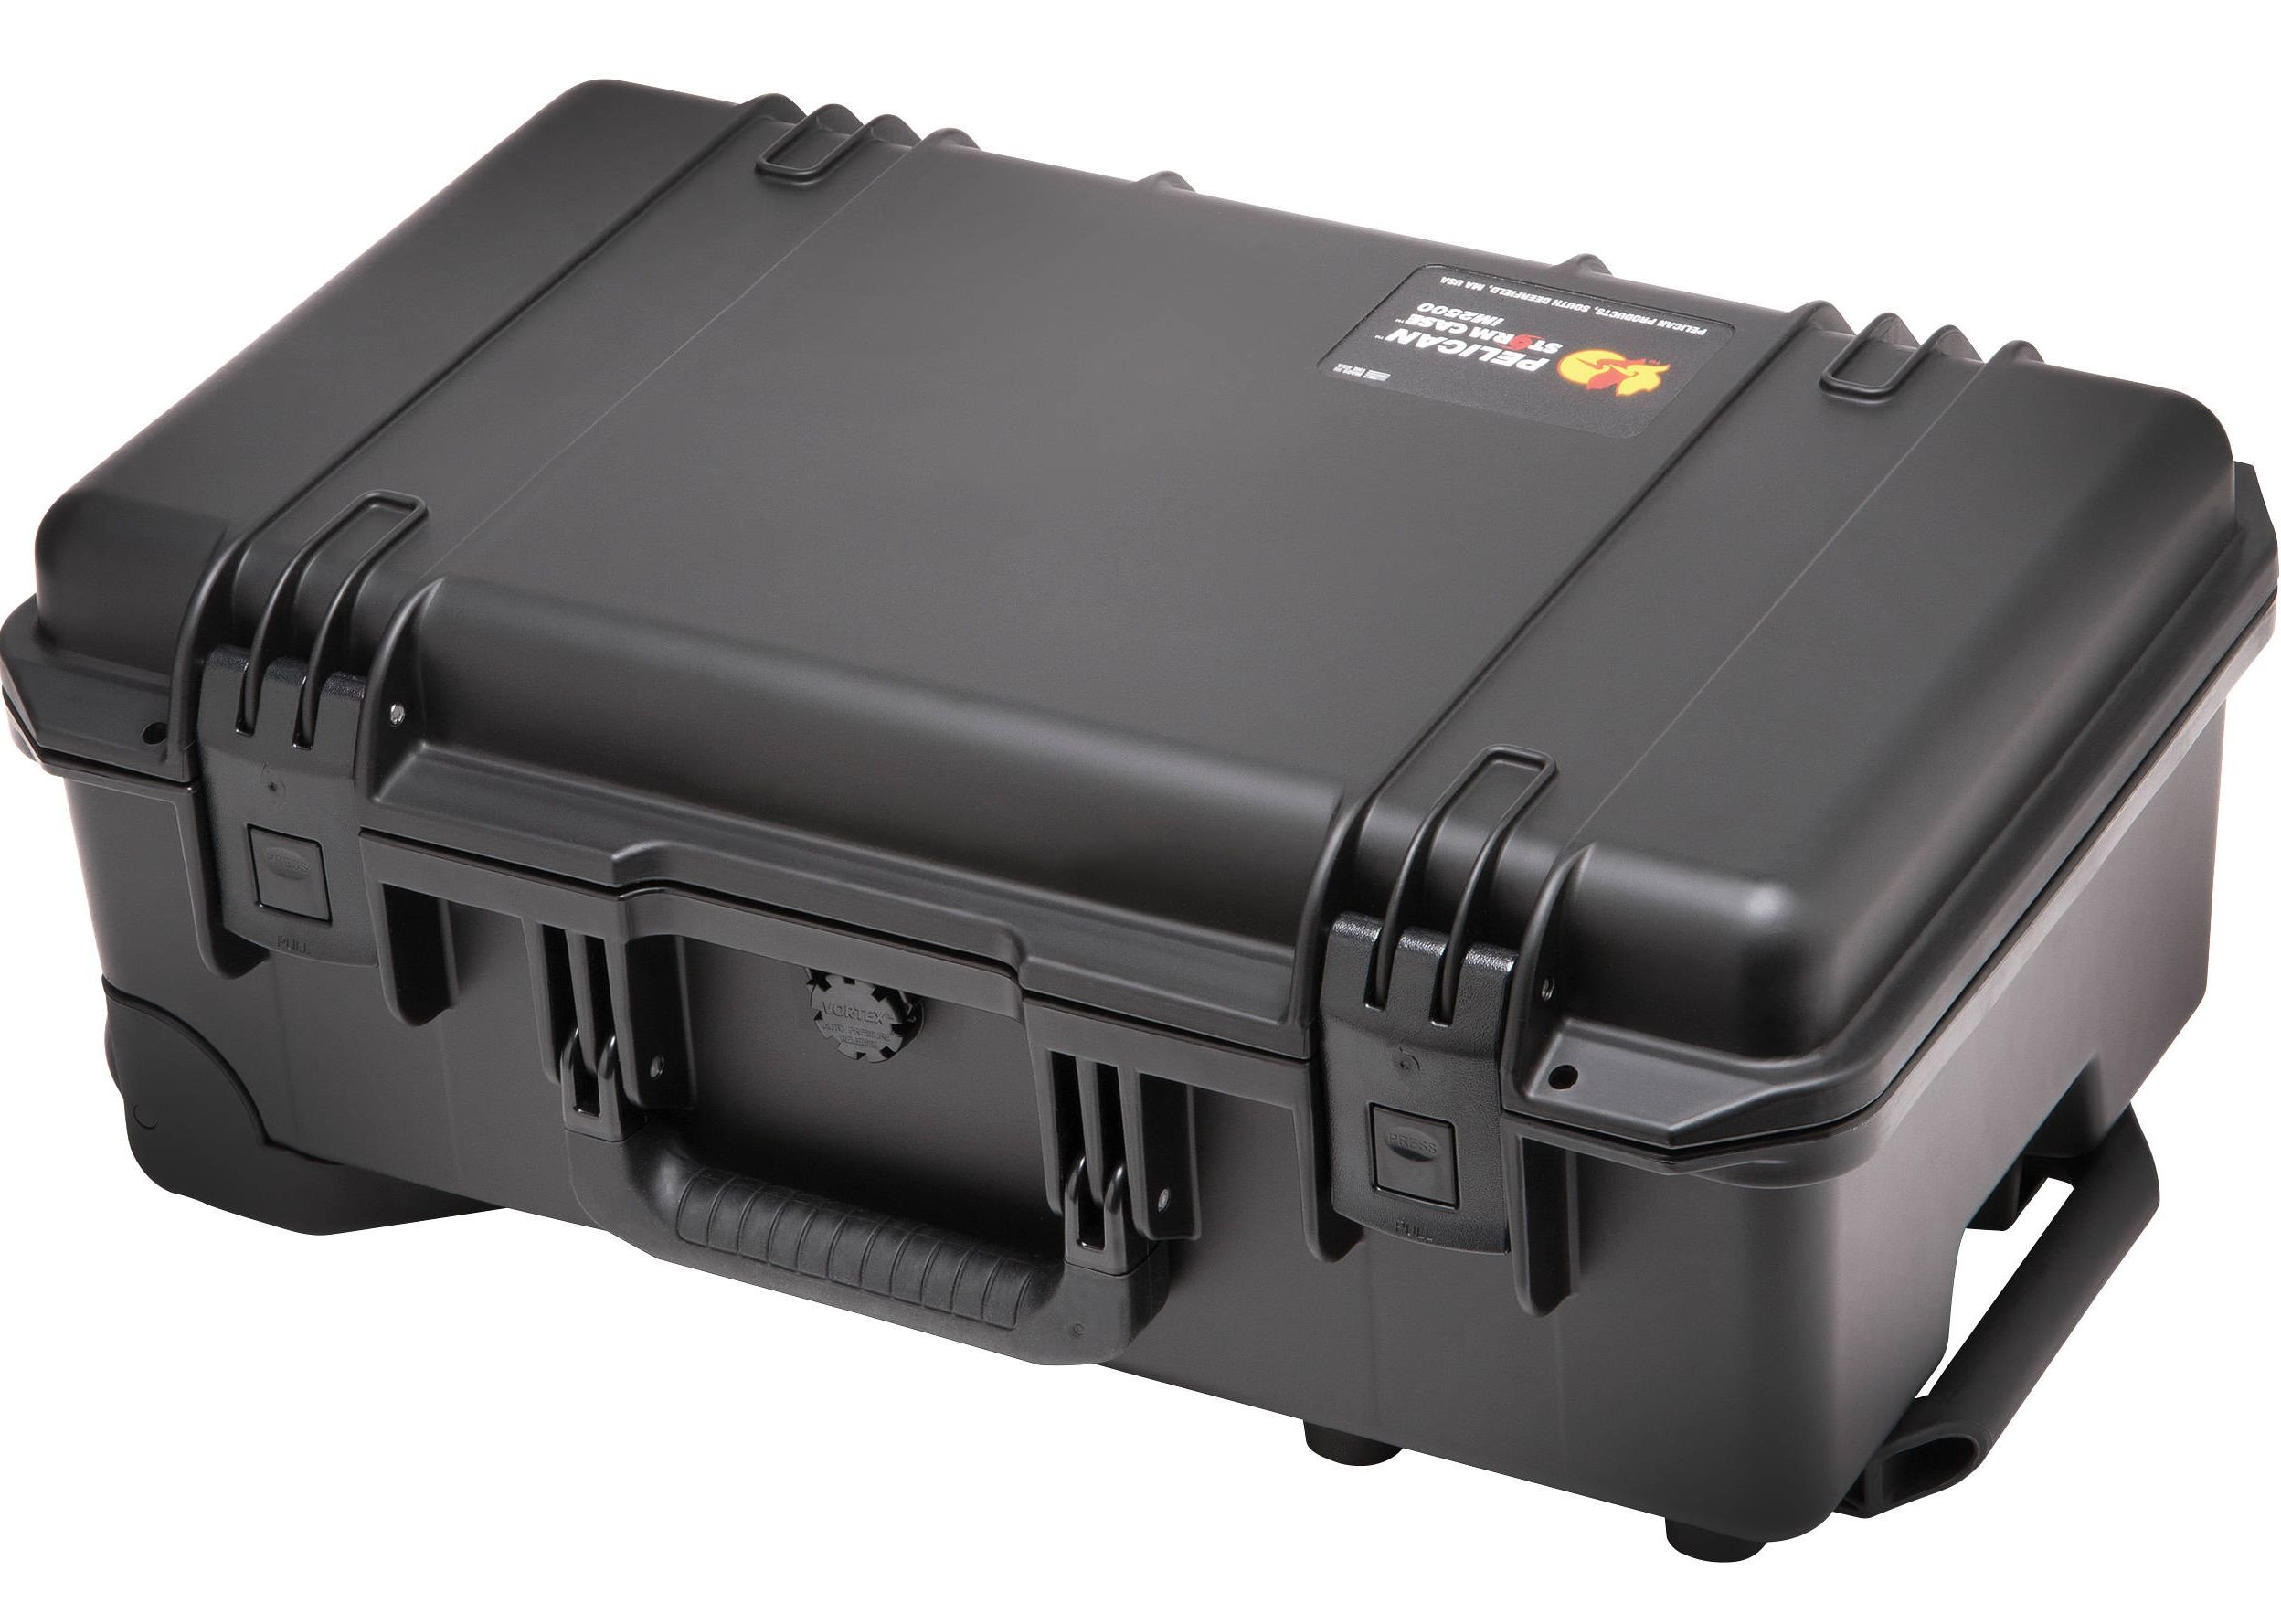 G-Technology G-SPEED Shuttle XL Protective Case - Pelican Storm iM2500 with Evolution Series Module Foam by G-Technology